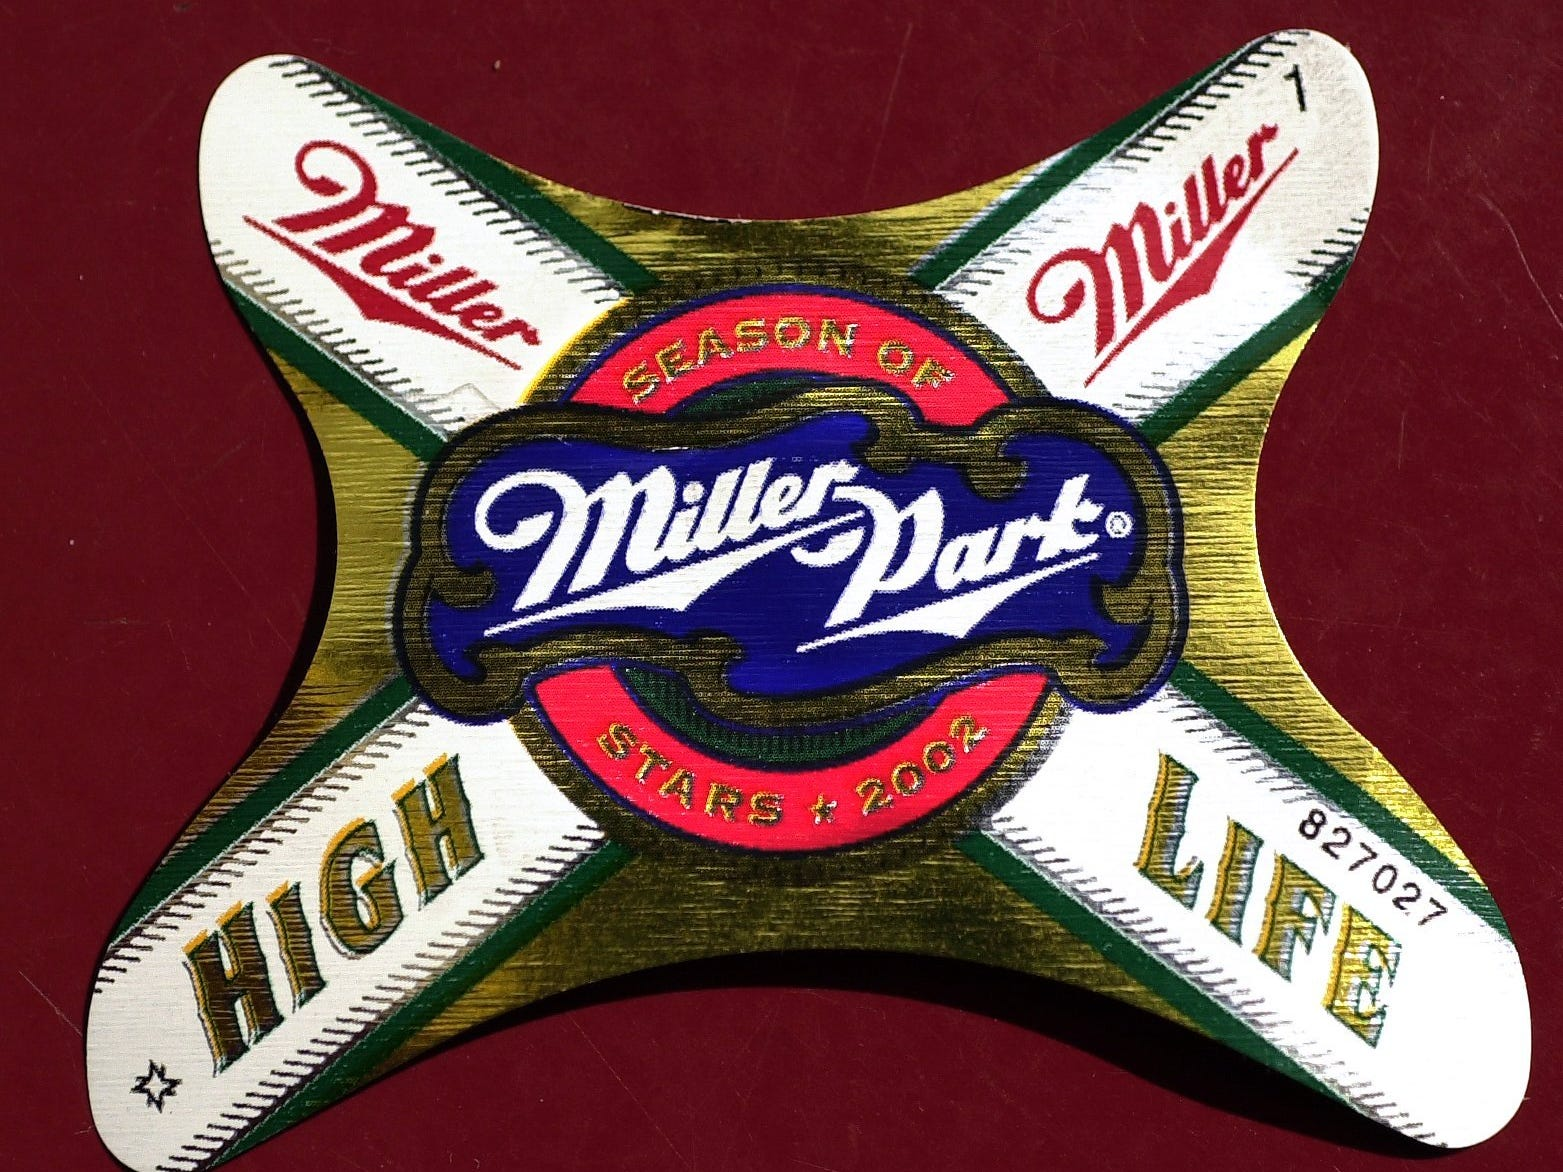 Miller Brewing is starting production on beer with new labels depicting the start of the season and the all-star game at Miller Park. Here a close-up of the label that goes on the bottle neck on March 27, 2002 .